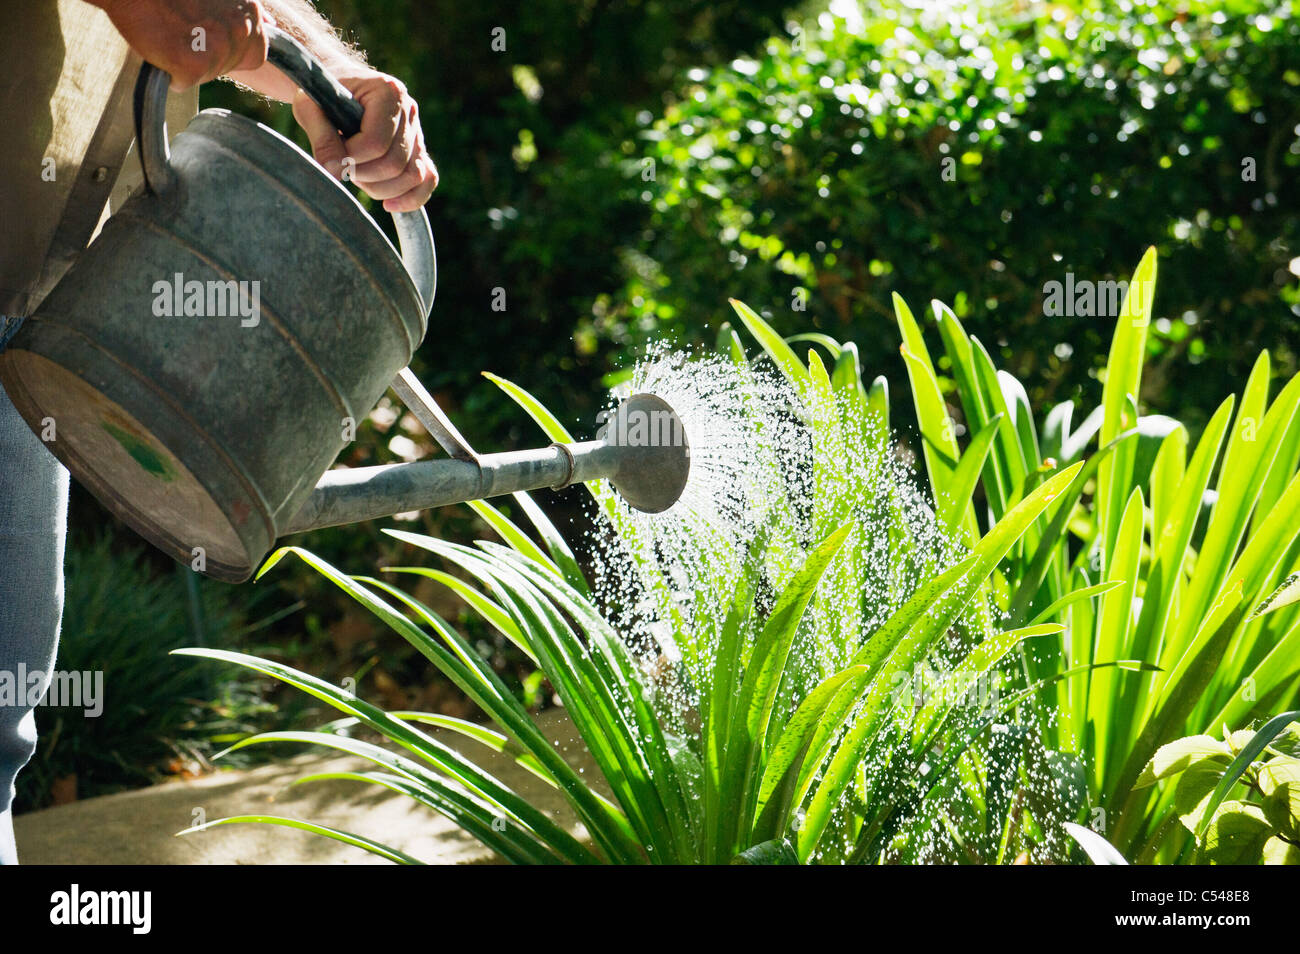 Mature man watering plants in a garden - Stock Image